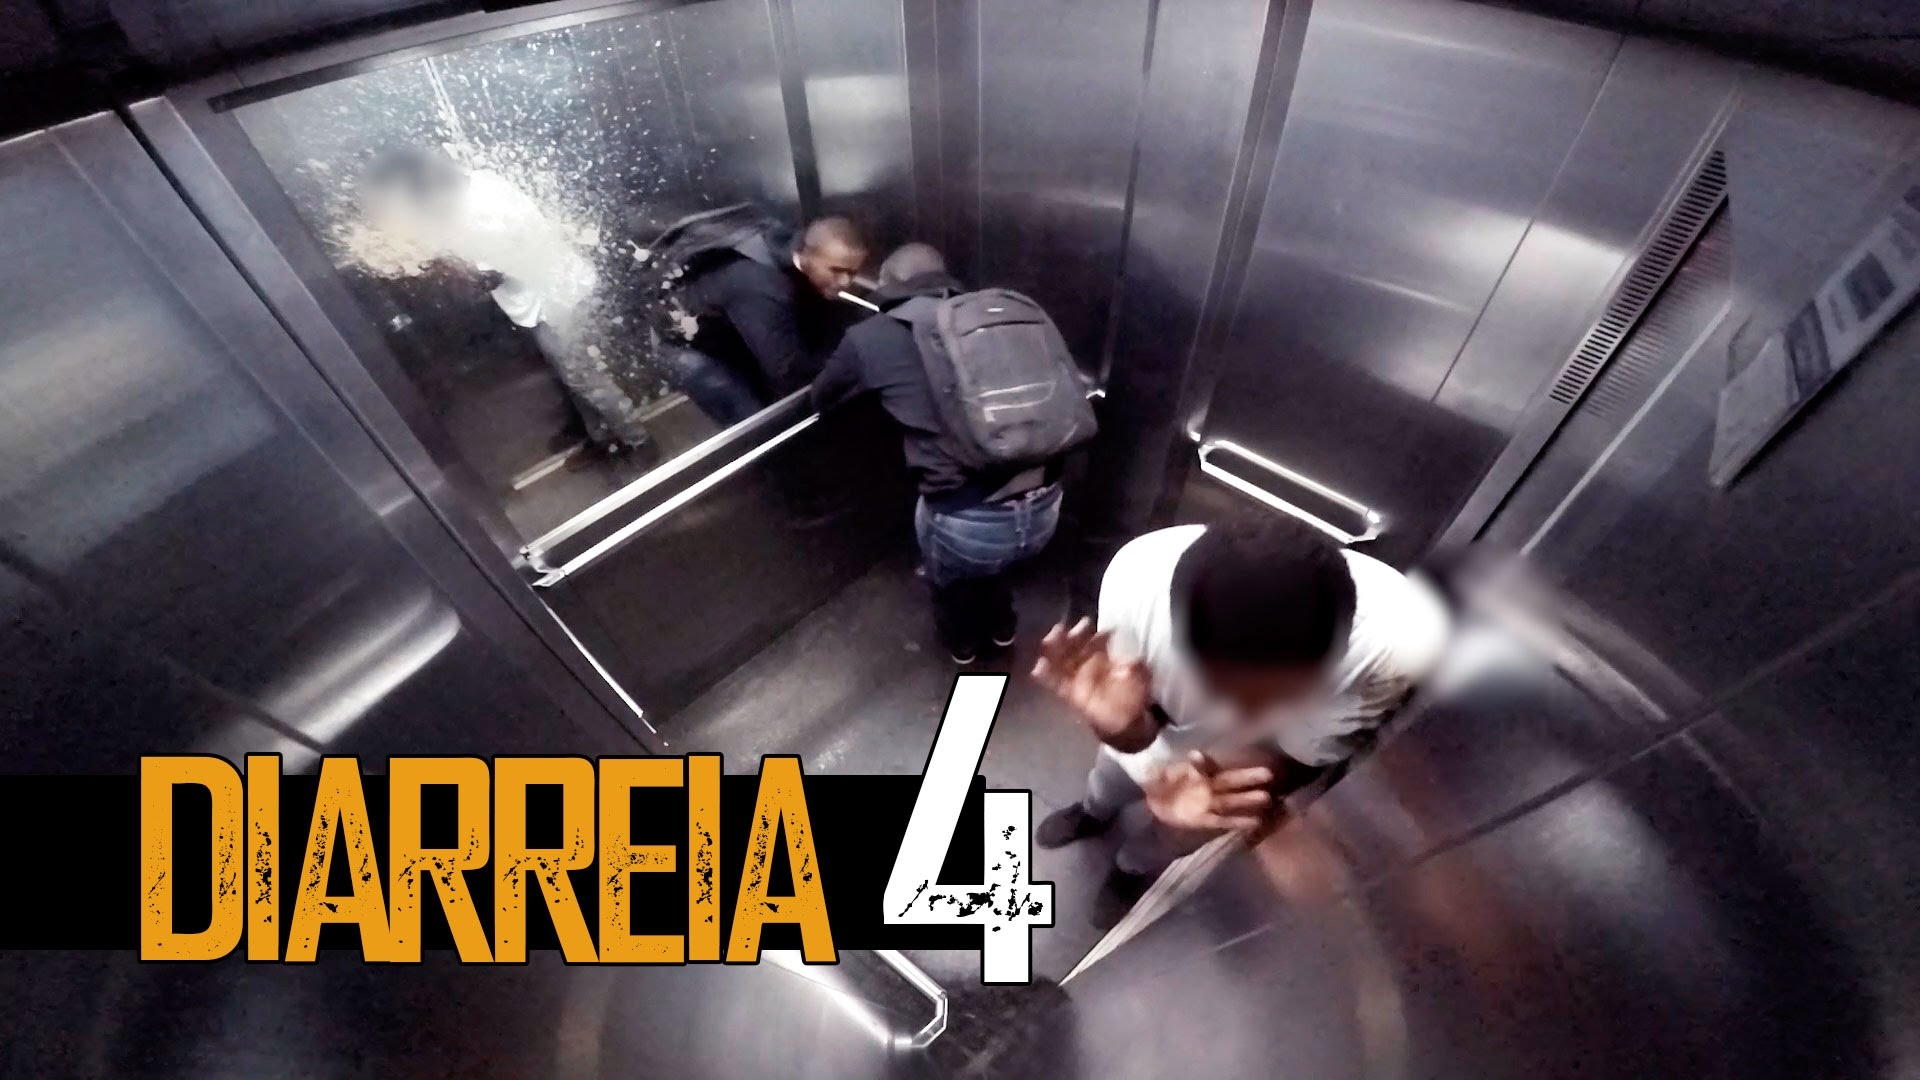 Explosive Diarrhea In Elevator Prank